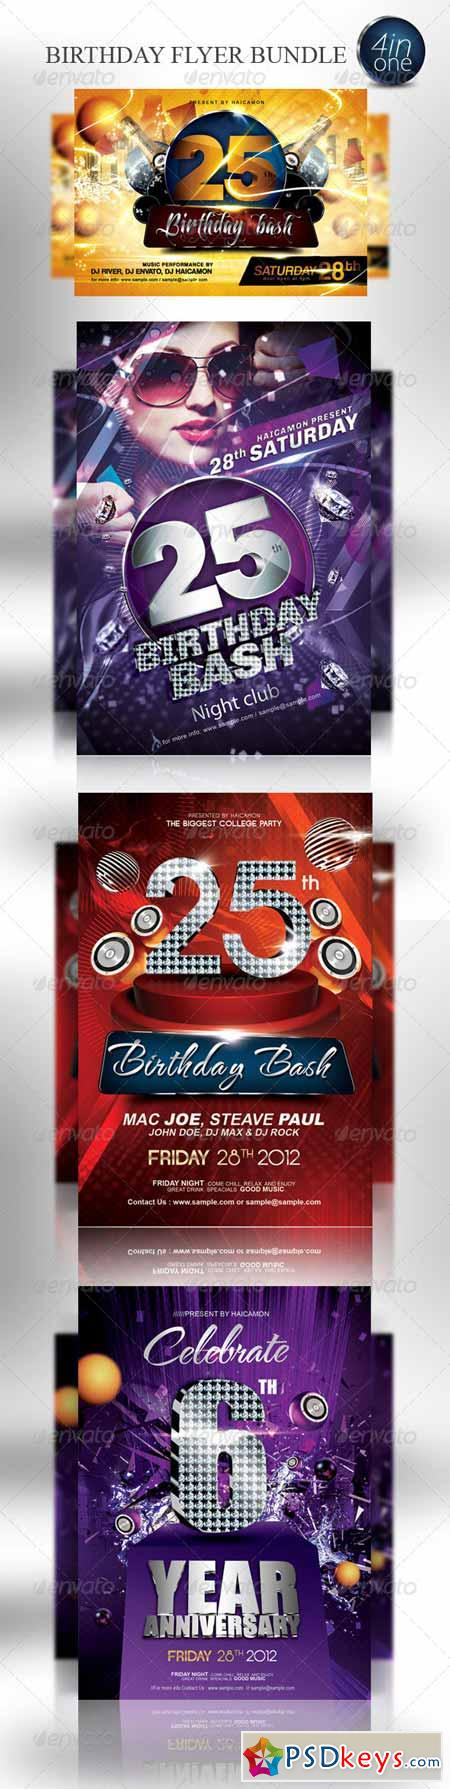 birthday party invitation flyer bundle 3044323 birthday party invitation flyer bundle 3044323